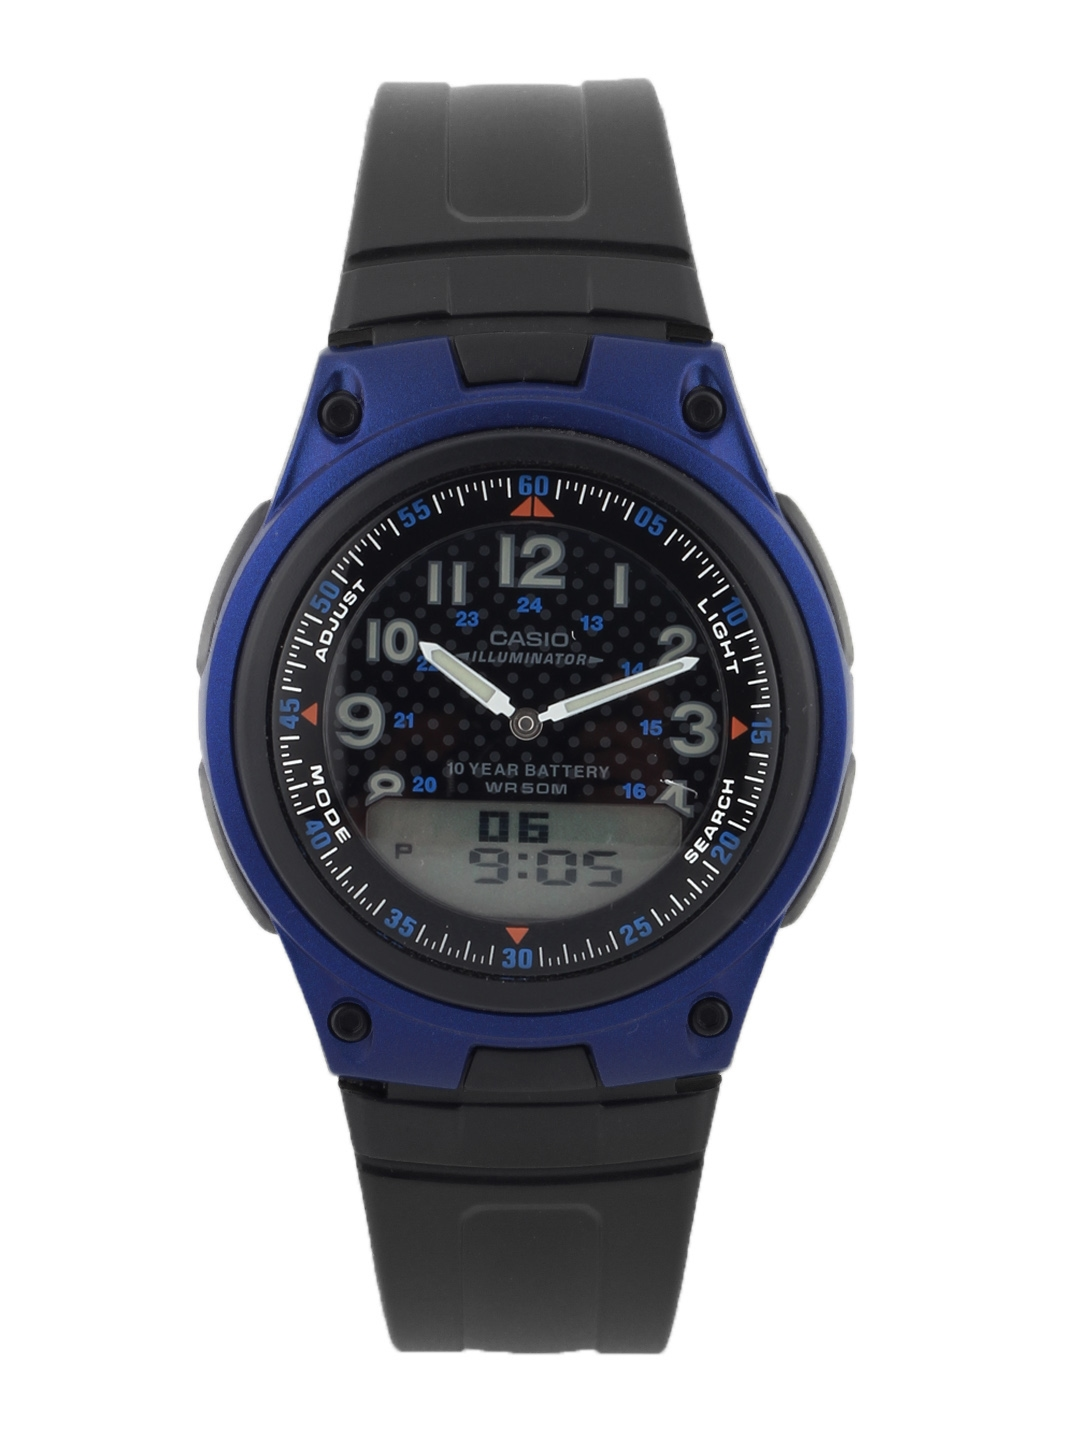 6288aec6f3d Buy CASIO YOUTH Men Black Dial Analogue   Digital Watch AD137 ...